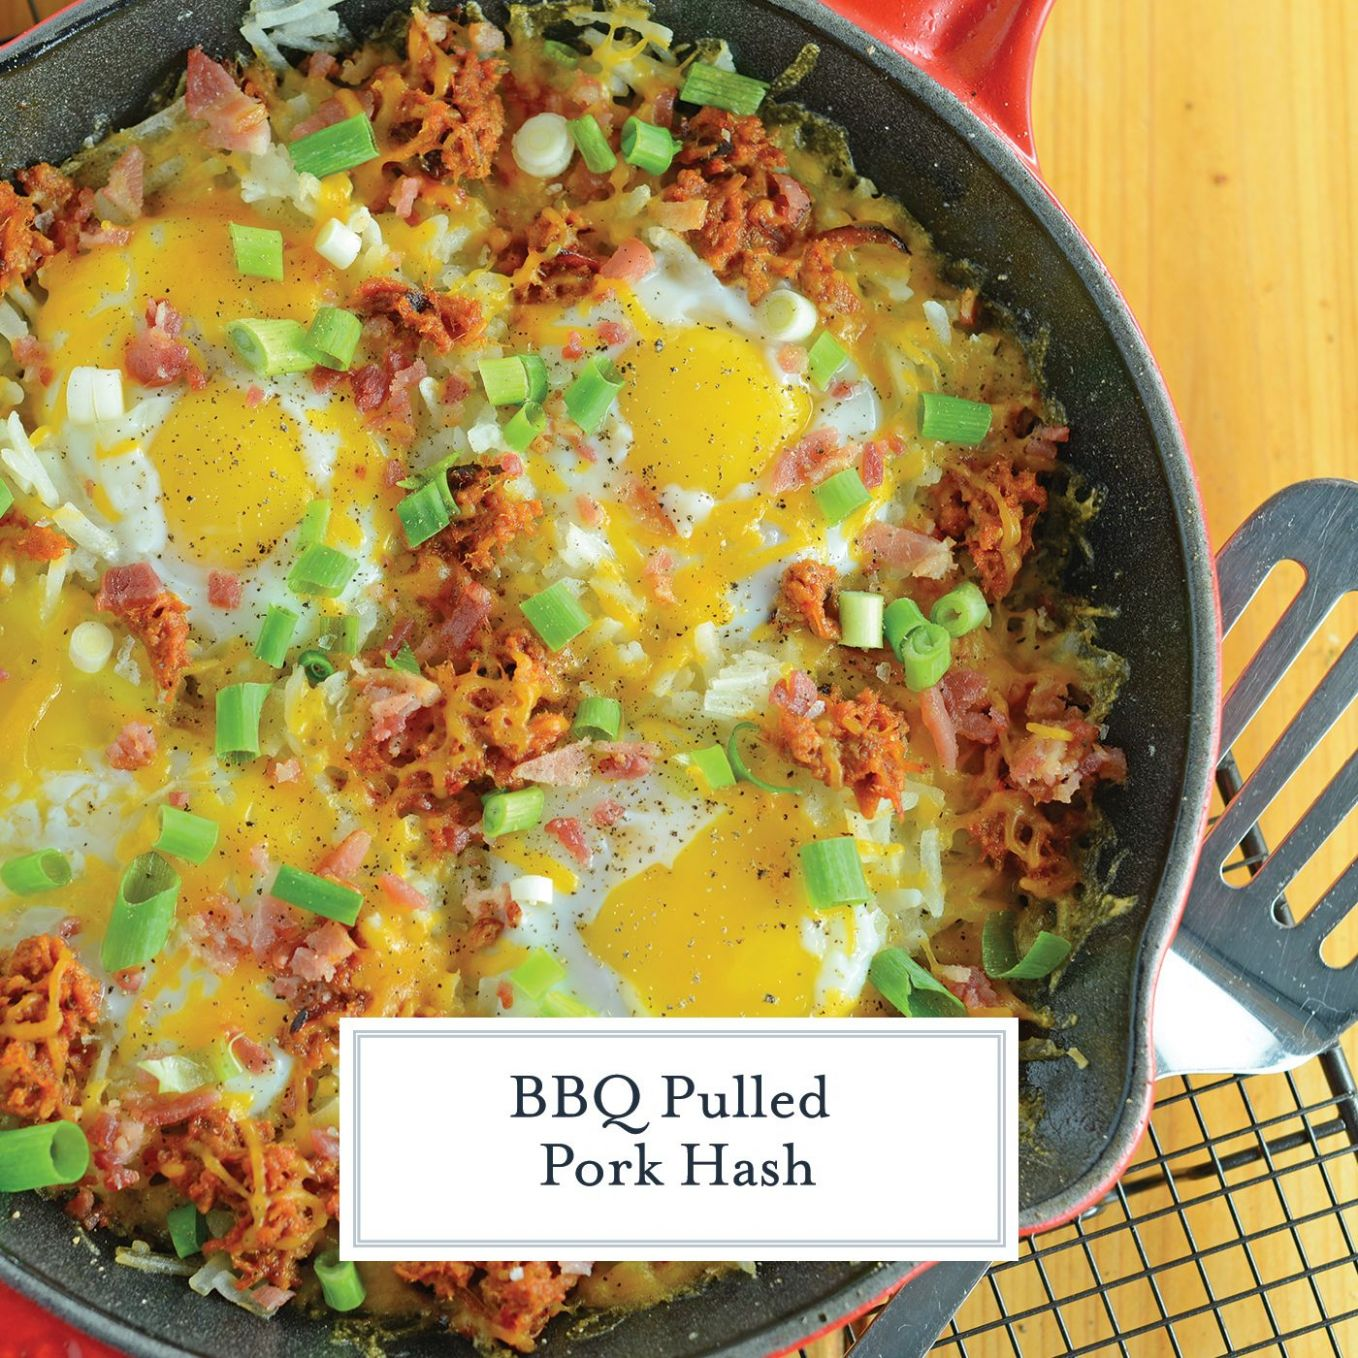 BBQ Pulled Pork Hash is my hands down, favorite Sunday brunch ...